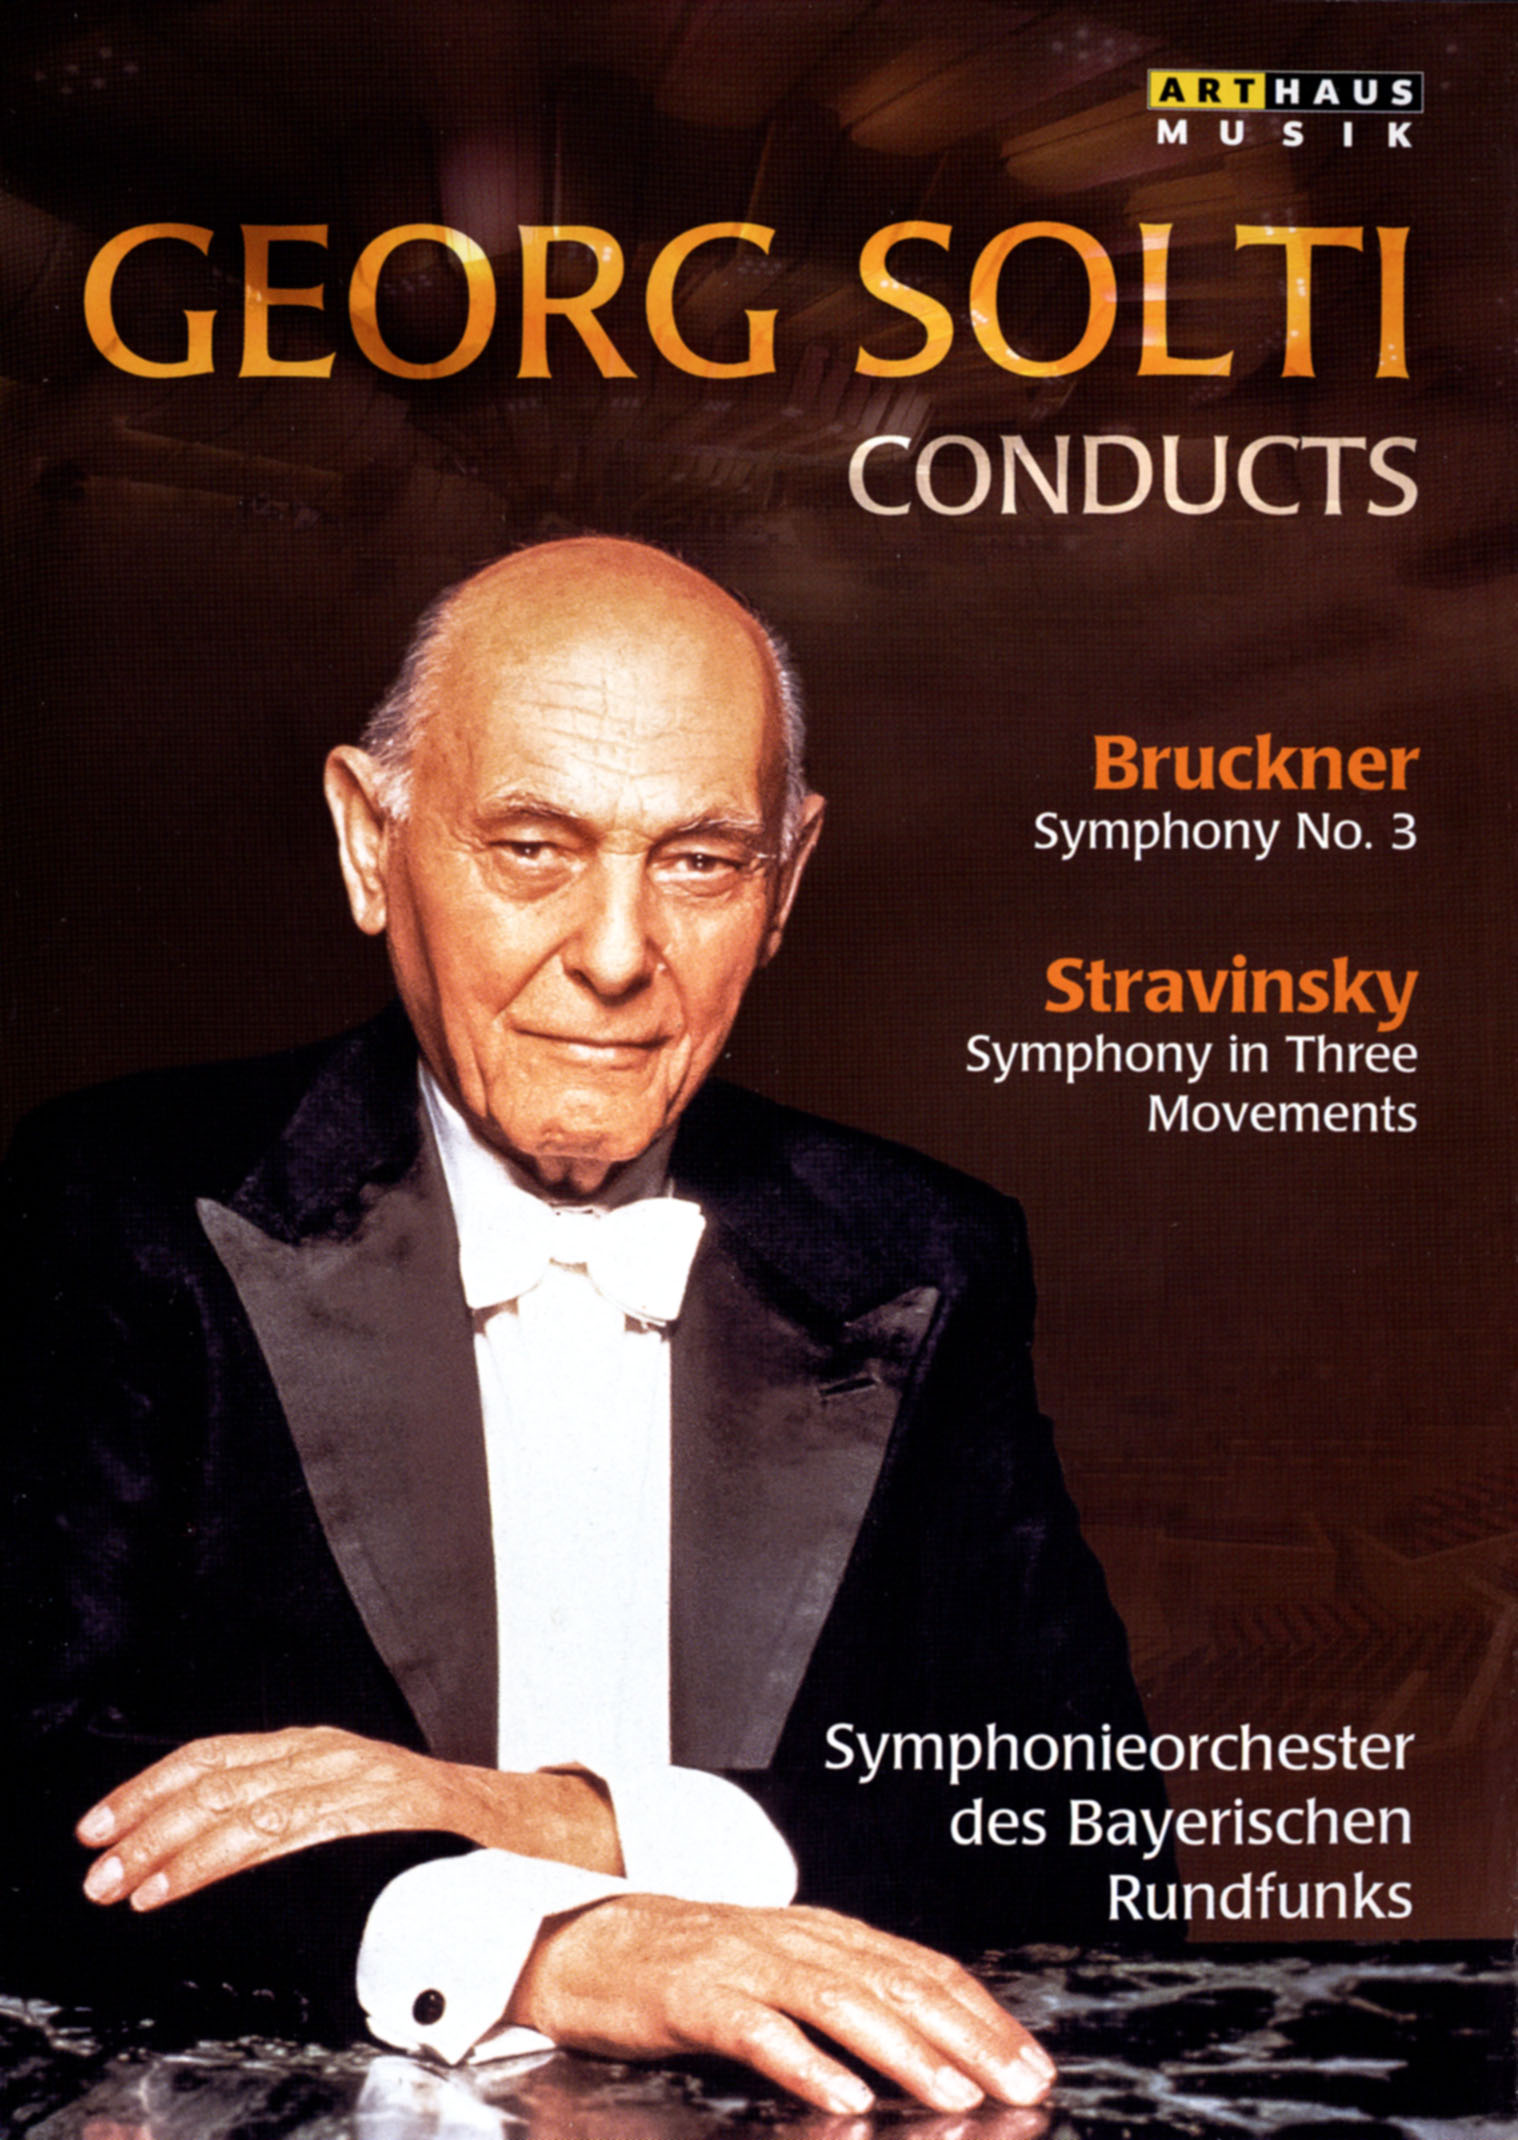 Georg Solti Conducts: Bruckner - Symphony No. 3/Stravinsky - Symphony in Three Movements